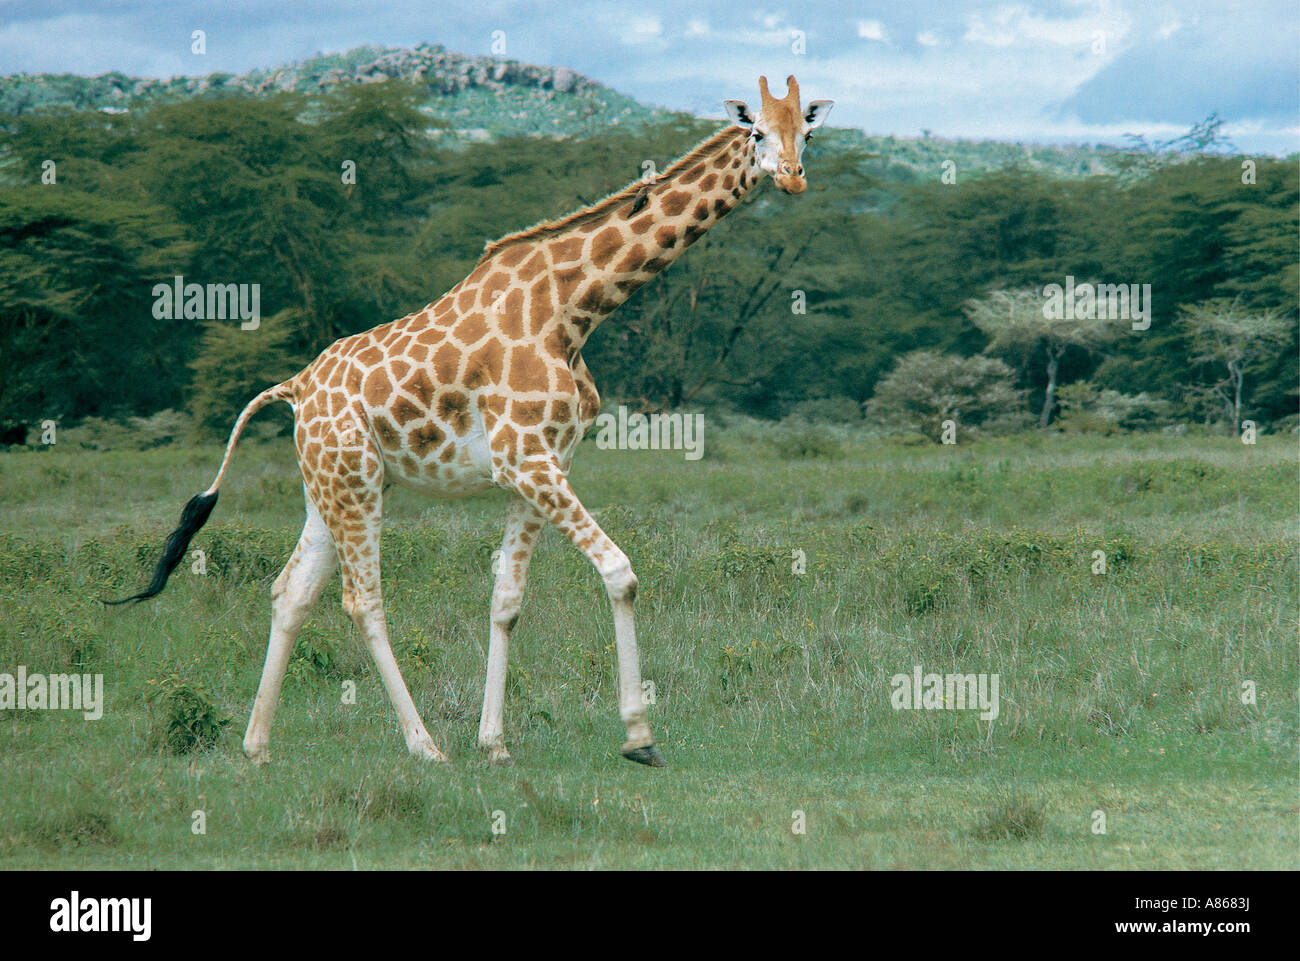 Rothschild s Giraffe Lake Nakuru National Park Kenya Stock Photo